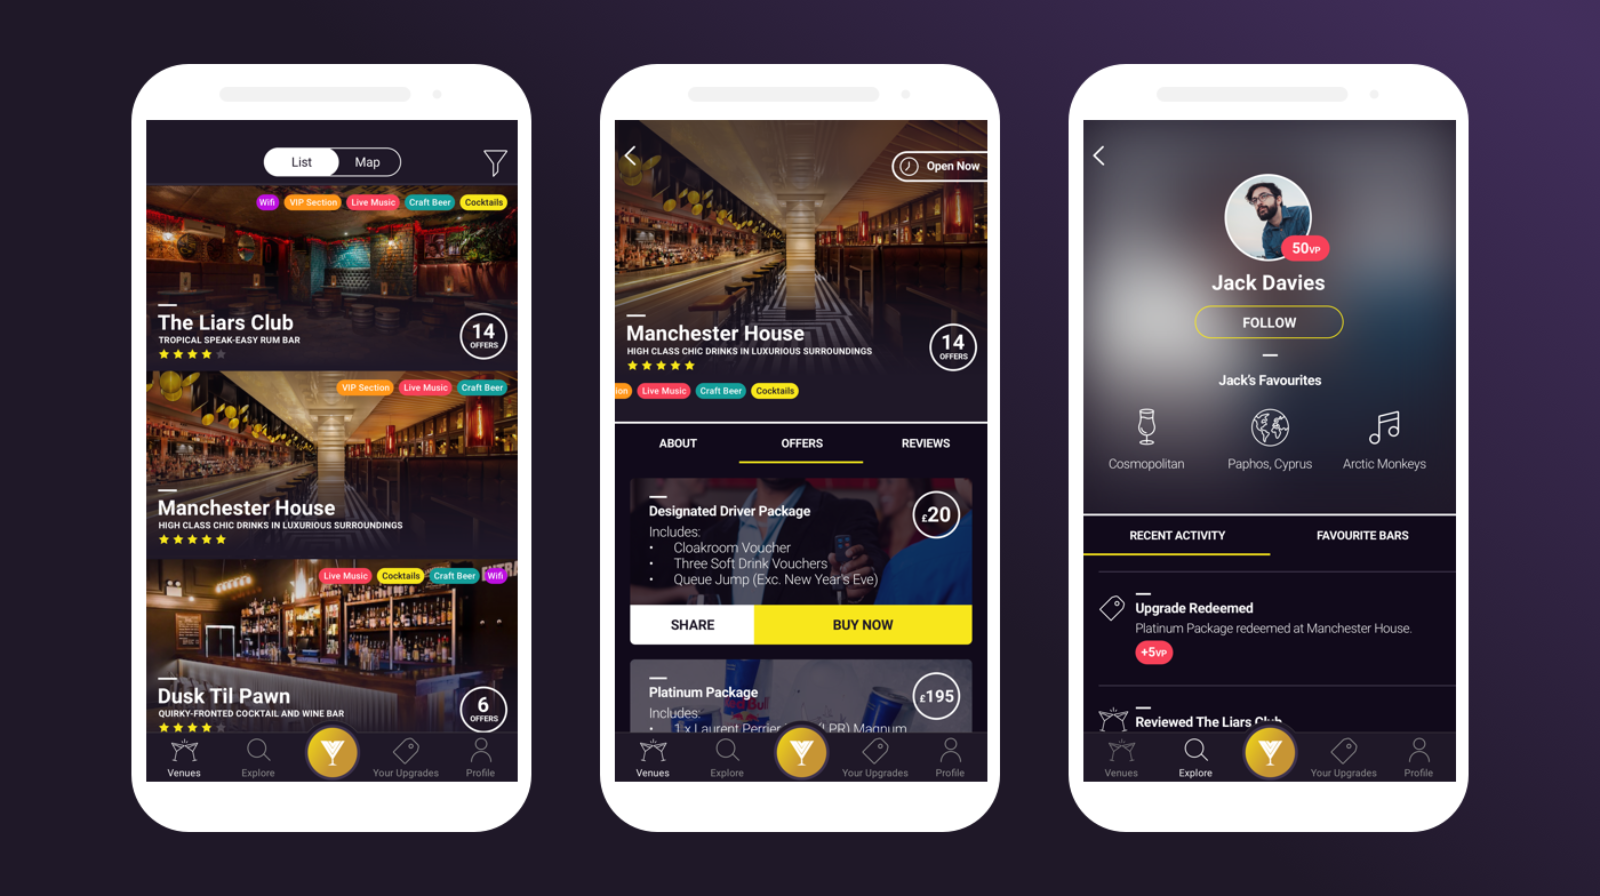 Viper App Designs — Viper Venue Listings (left), Viper Venue Profile (center), User Profile (right)